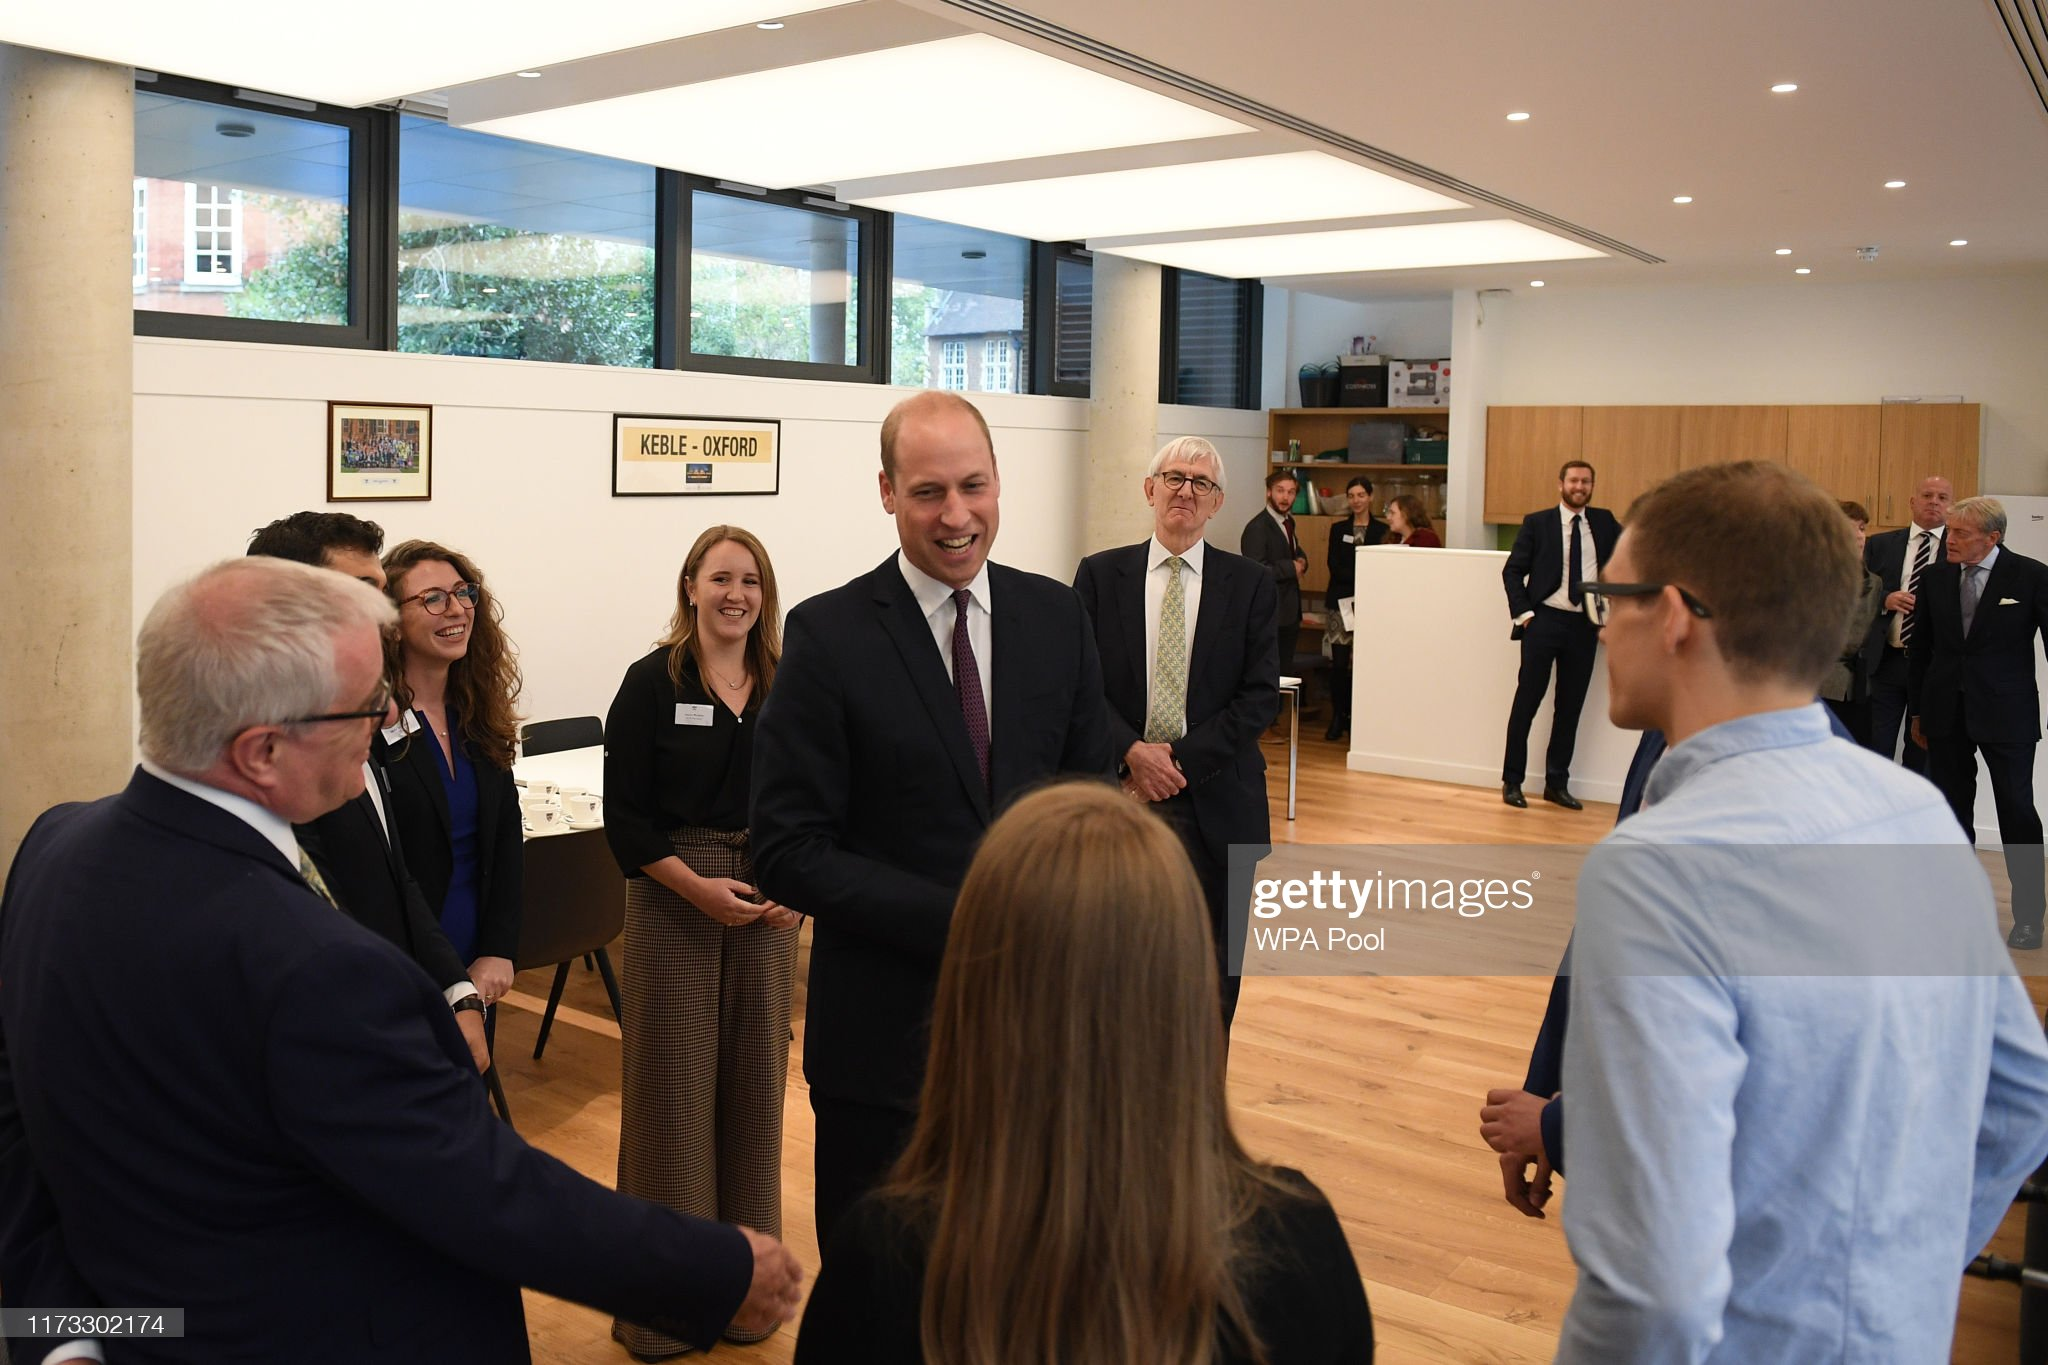 prince-william-duke-of-cambridge-meets-graduate-students-during-a-to-picture-id1173302174